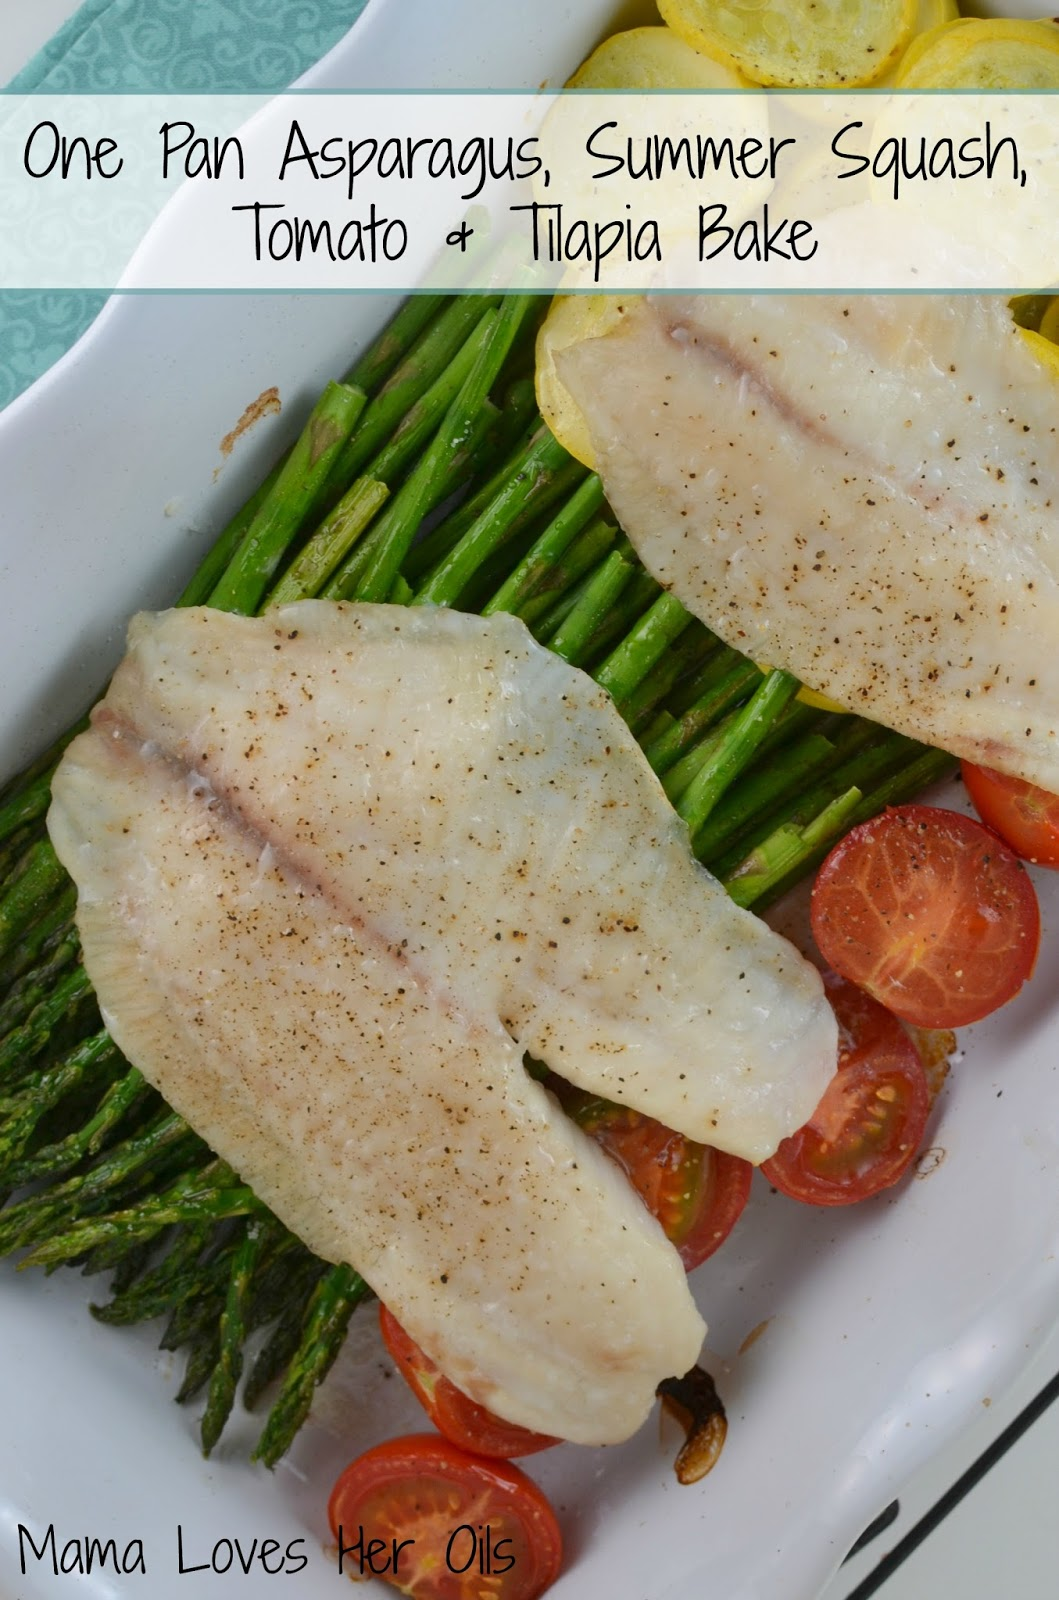 Tender Roasted Asparagus Recipe A Delicious And Healthy 30 Minute Meal!  This Meal Is Packed